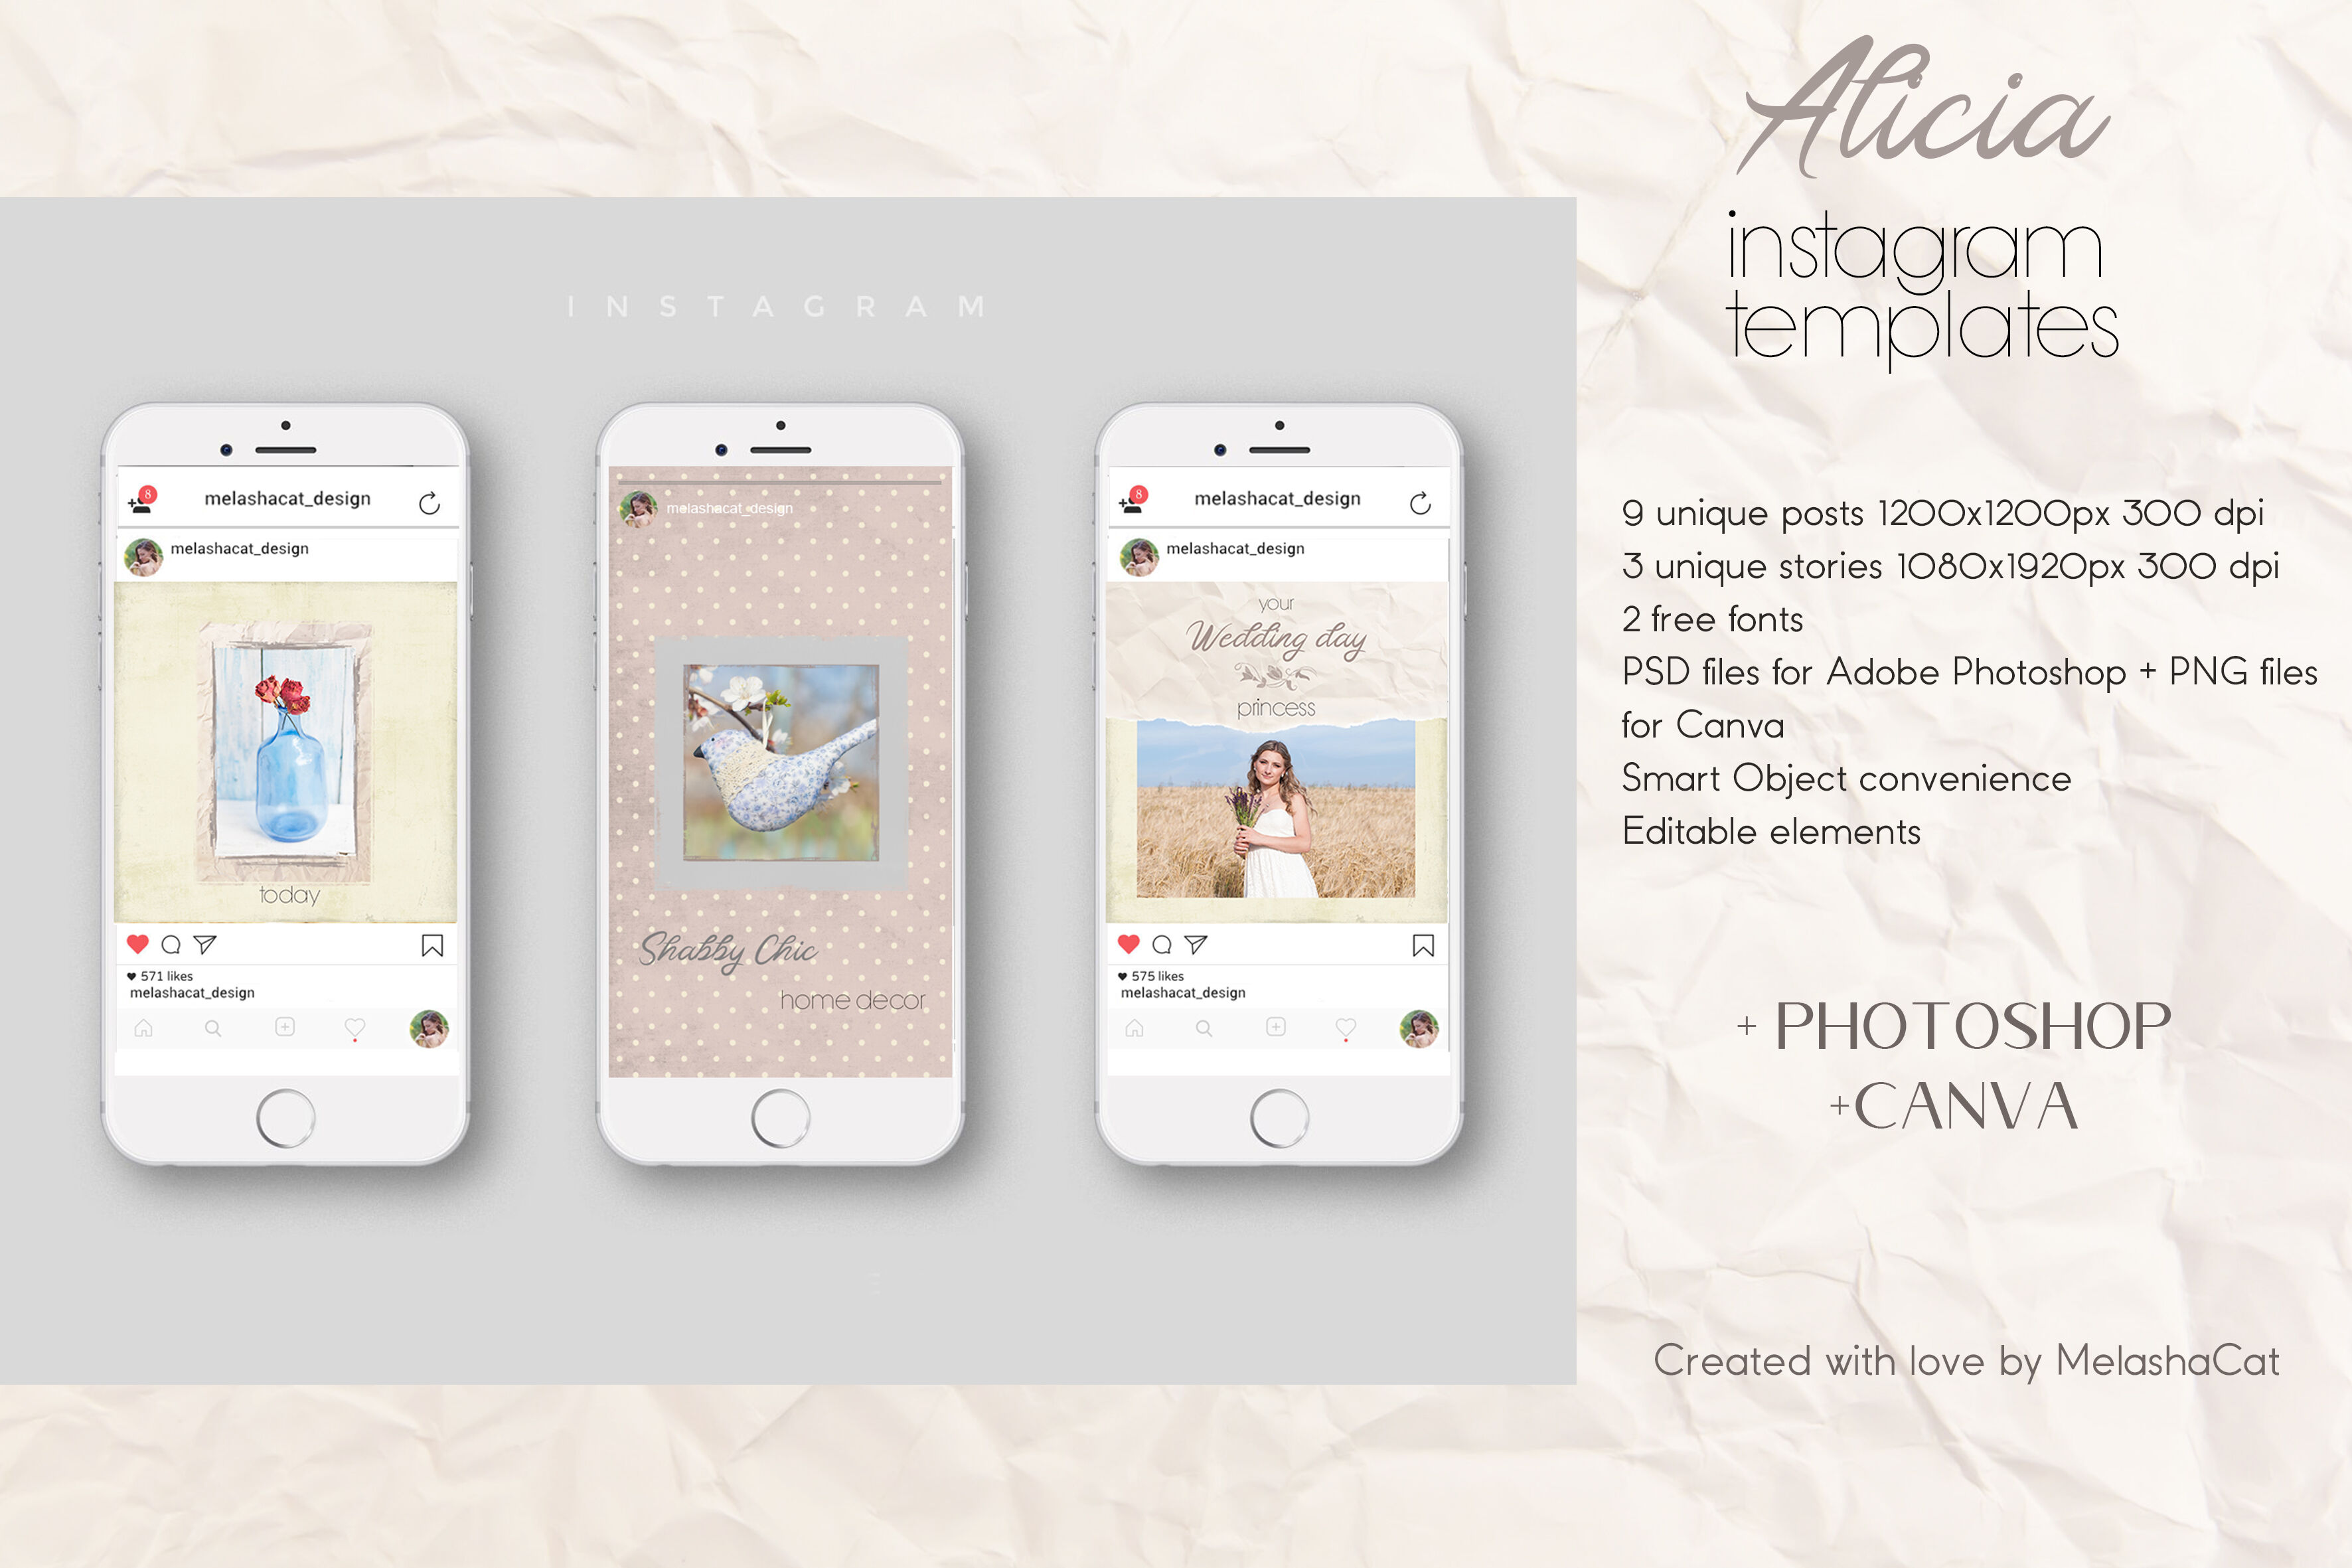 Alicia Instagram Templates 9 Posts And 3 Stories Psd Png By